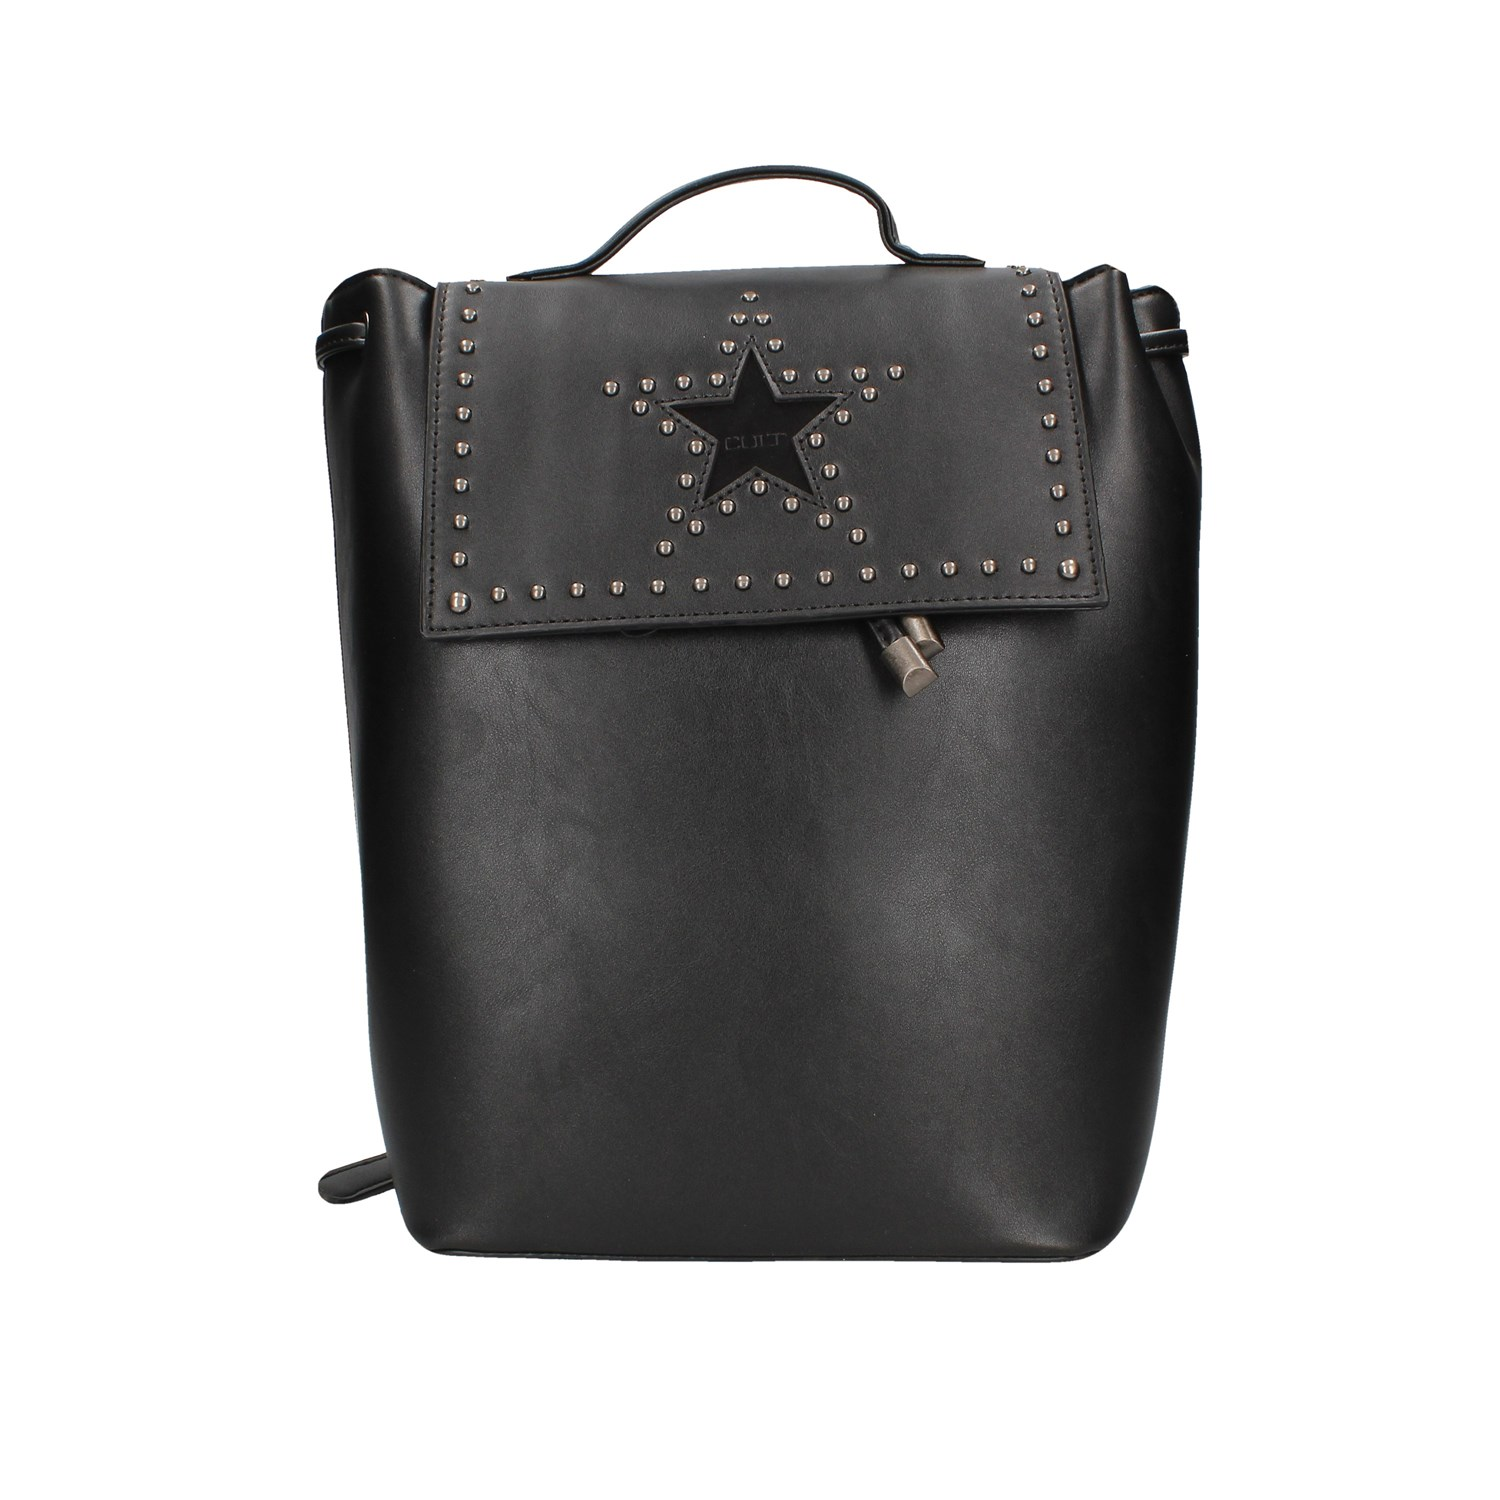 Cult 9366 Only Bags Woman